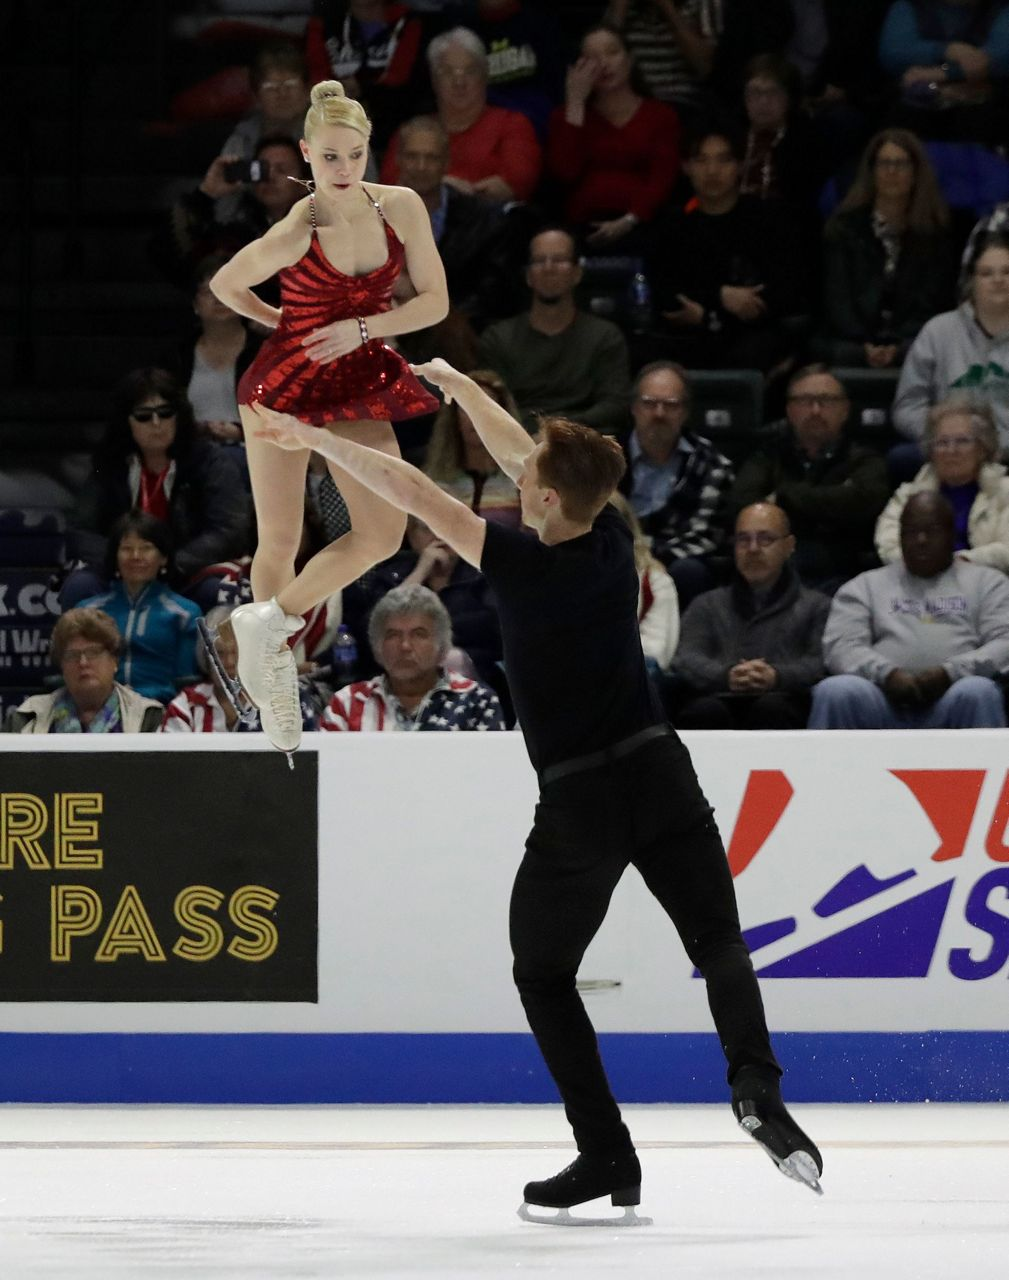 Nov 18, · Skate America — the first of the six Grand Prix Series events this season — takes place at the Angel of the Winds Arena in Everett, Washington, Oct. A number of U.S. veterans have opted not to compete this season. Adam Rippon, Ashley Wagner, Maia Shibutani and Alex Shibutani and Mirai Nagasu are all out.